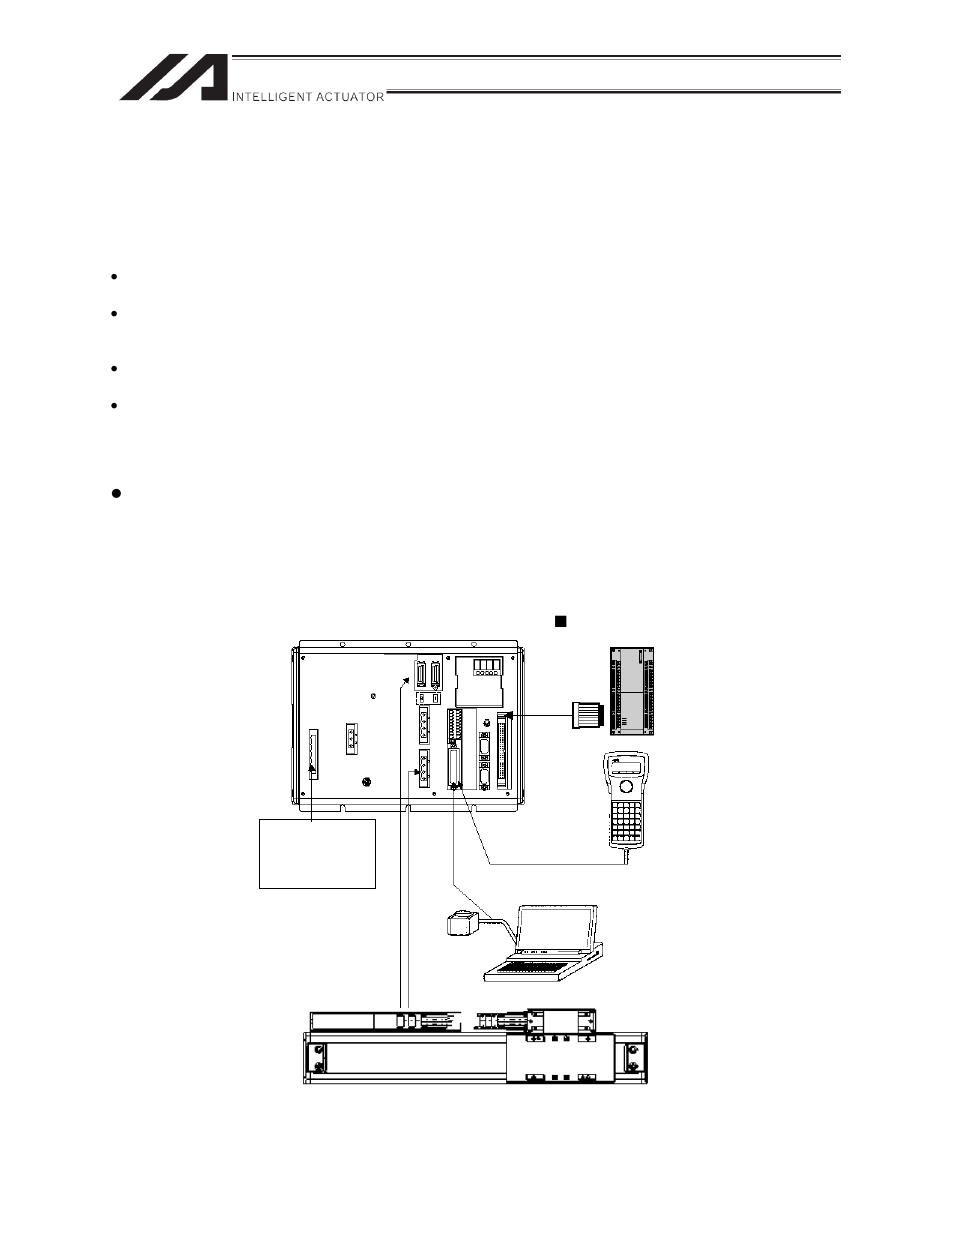 Lsa Wiring Diagram Electrical Diagrams 2010 Cts V Of The Cables Iai America W21ss User Manual Page 27 4 Way Switch